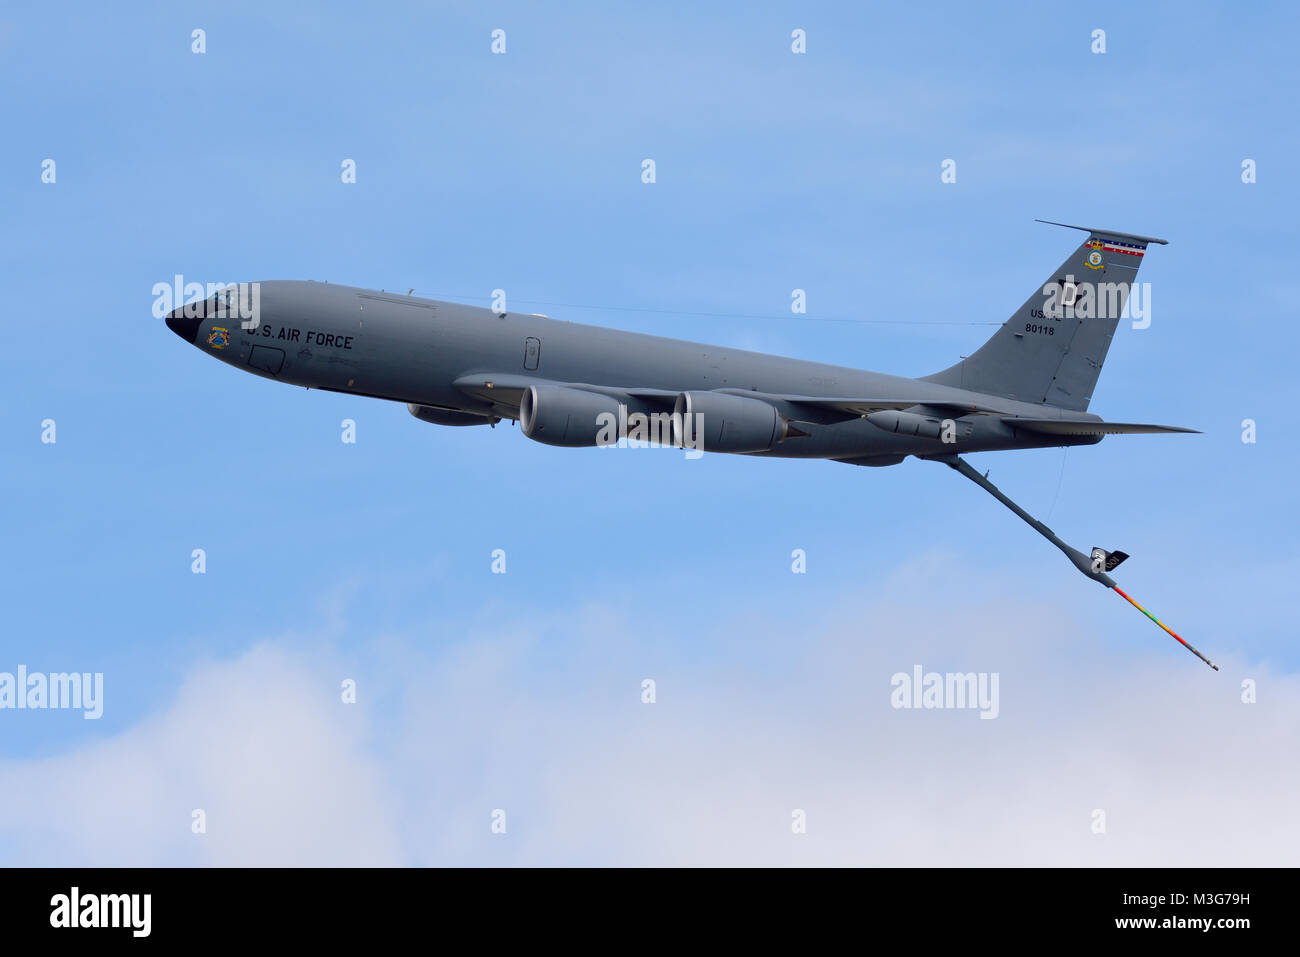 US Air Force Boeing KC-135R Stratotanker tanker transport plane trailing its refueling boom. Based at RAF Mildenhall, Stock Photo